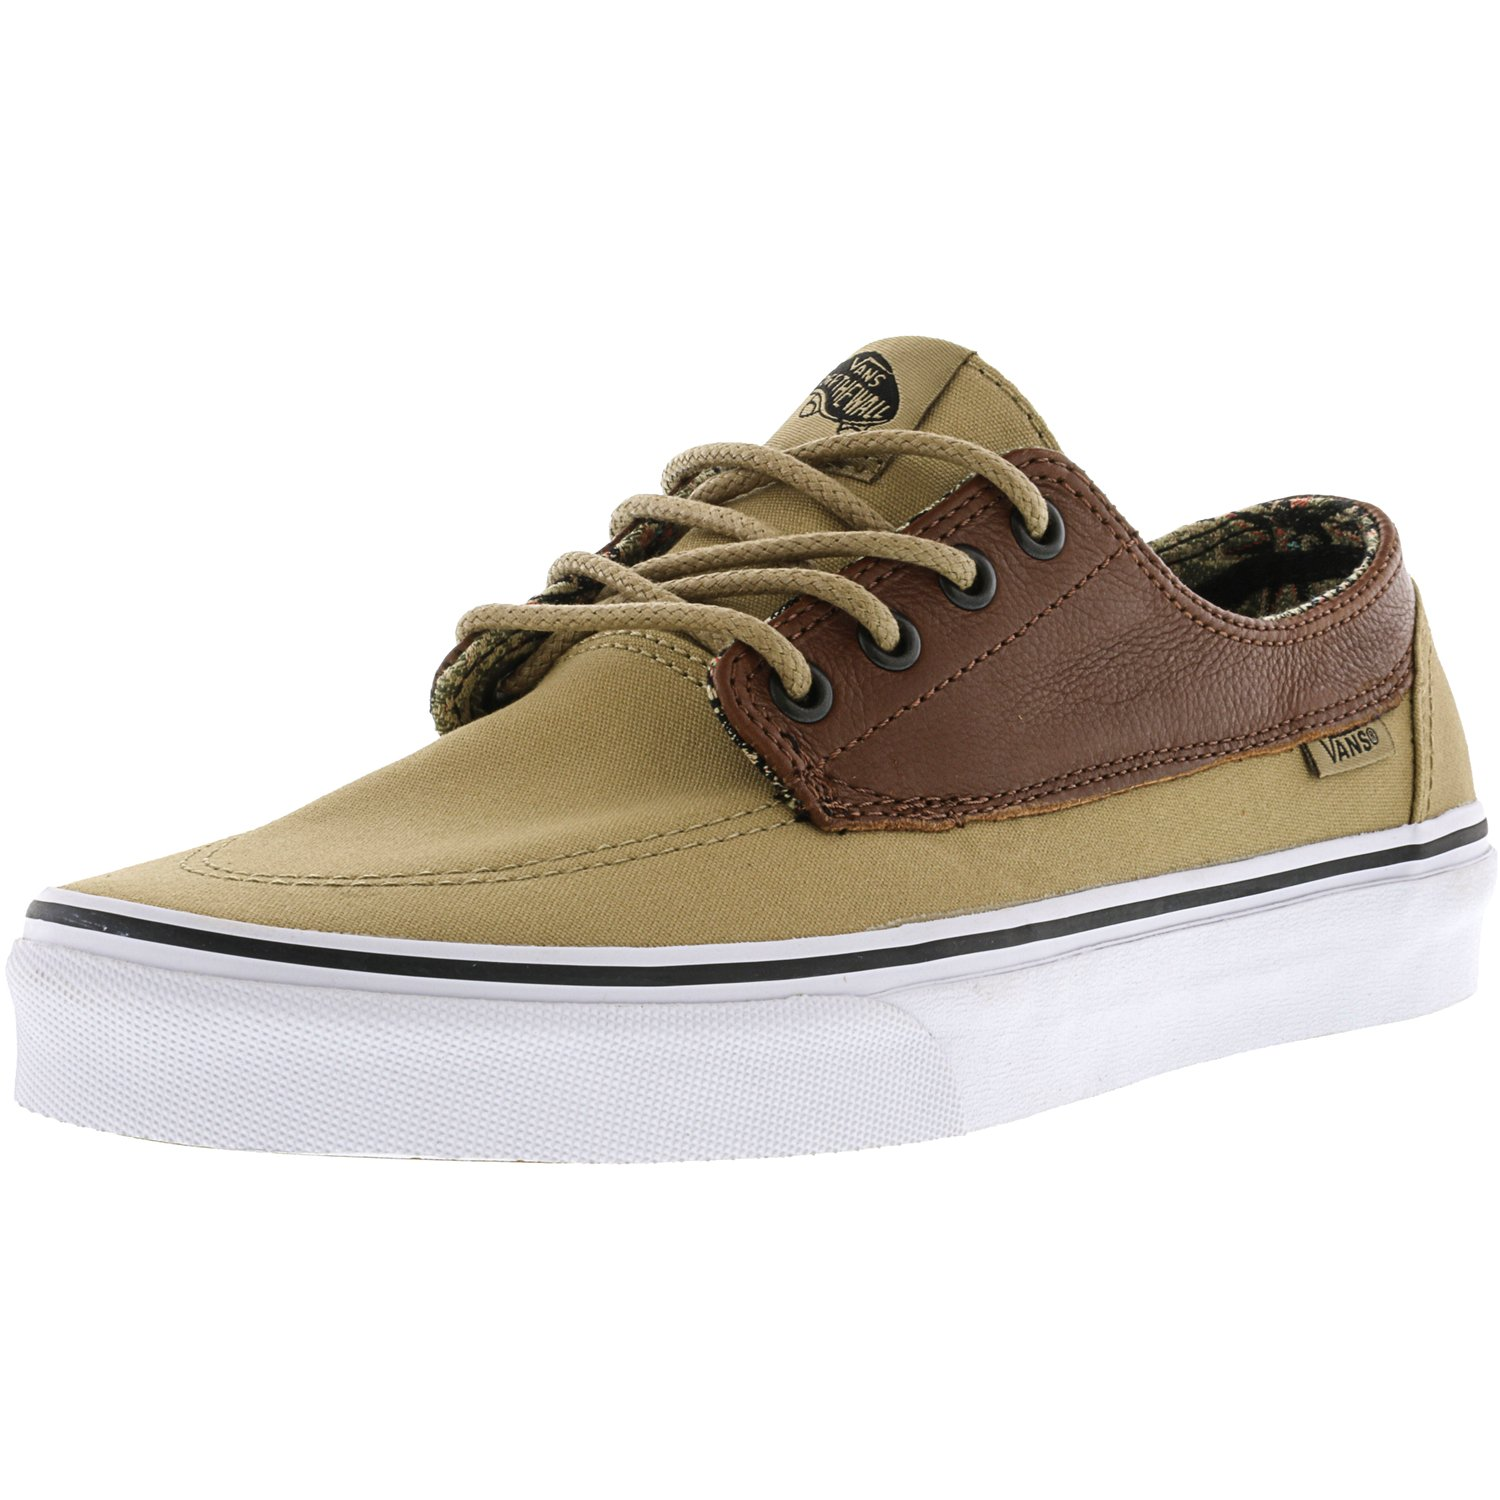 Vans Brigata C And L Moroccan Geo / Khaki Ankle-High Canvas Skateboarding Shoe - 11M 9.5M - image 1 of 1